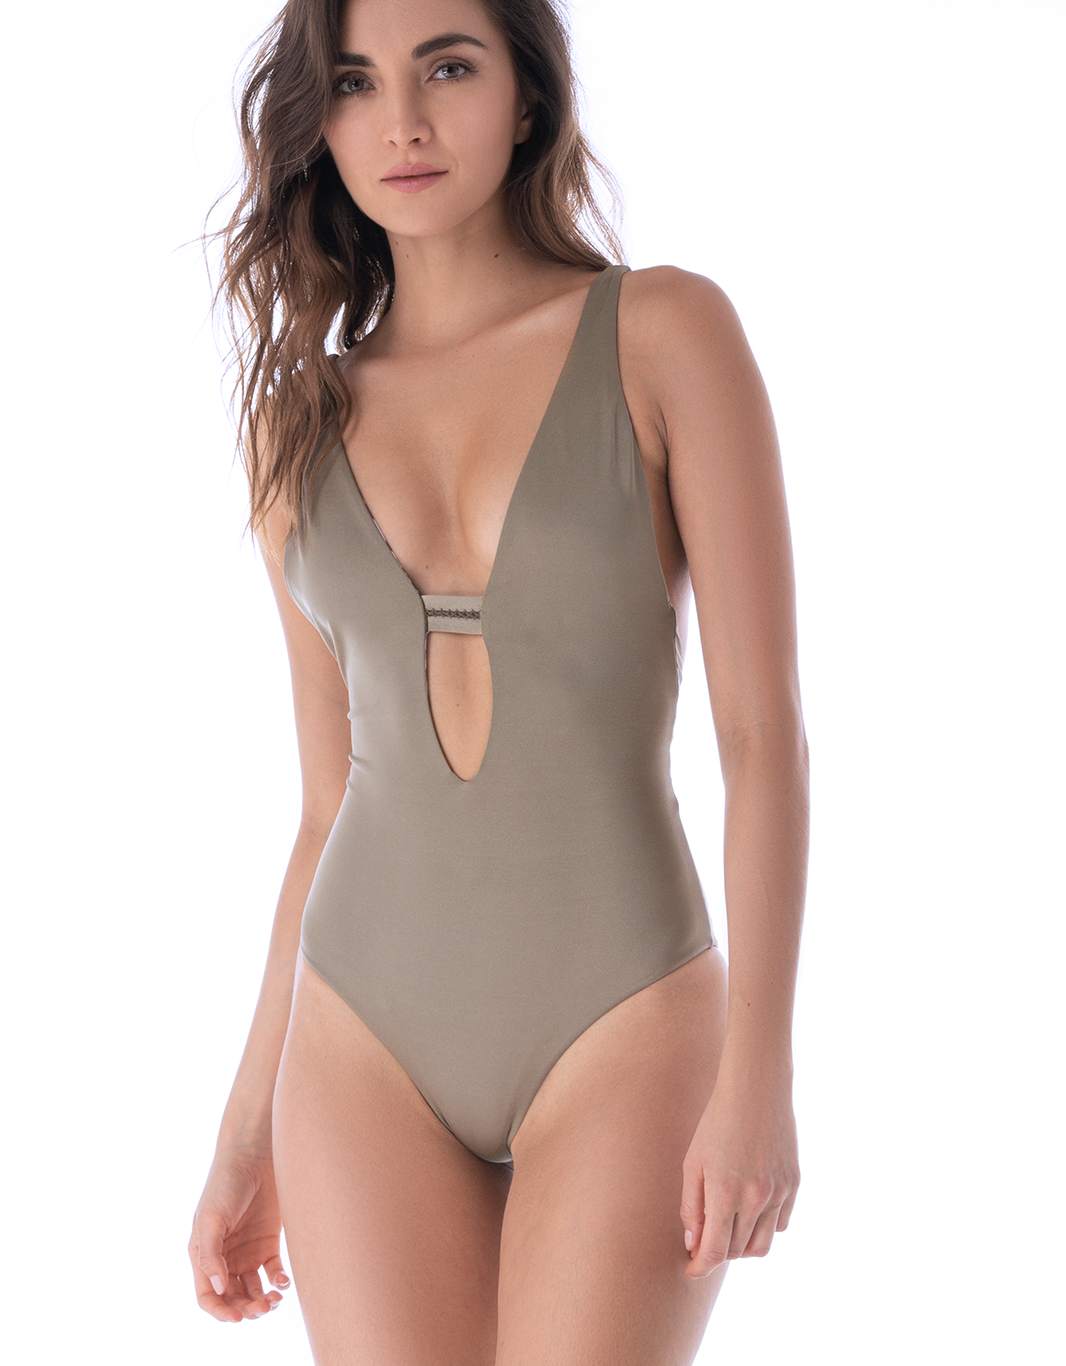 Zebrado del Mar One Piece - Eco Fabric